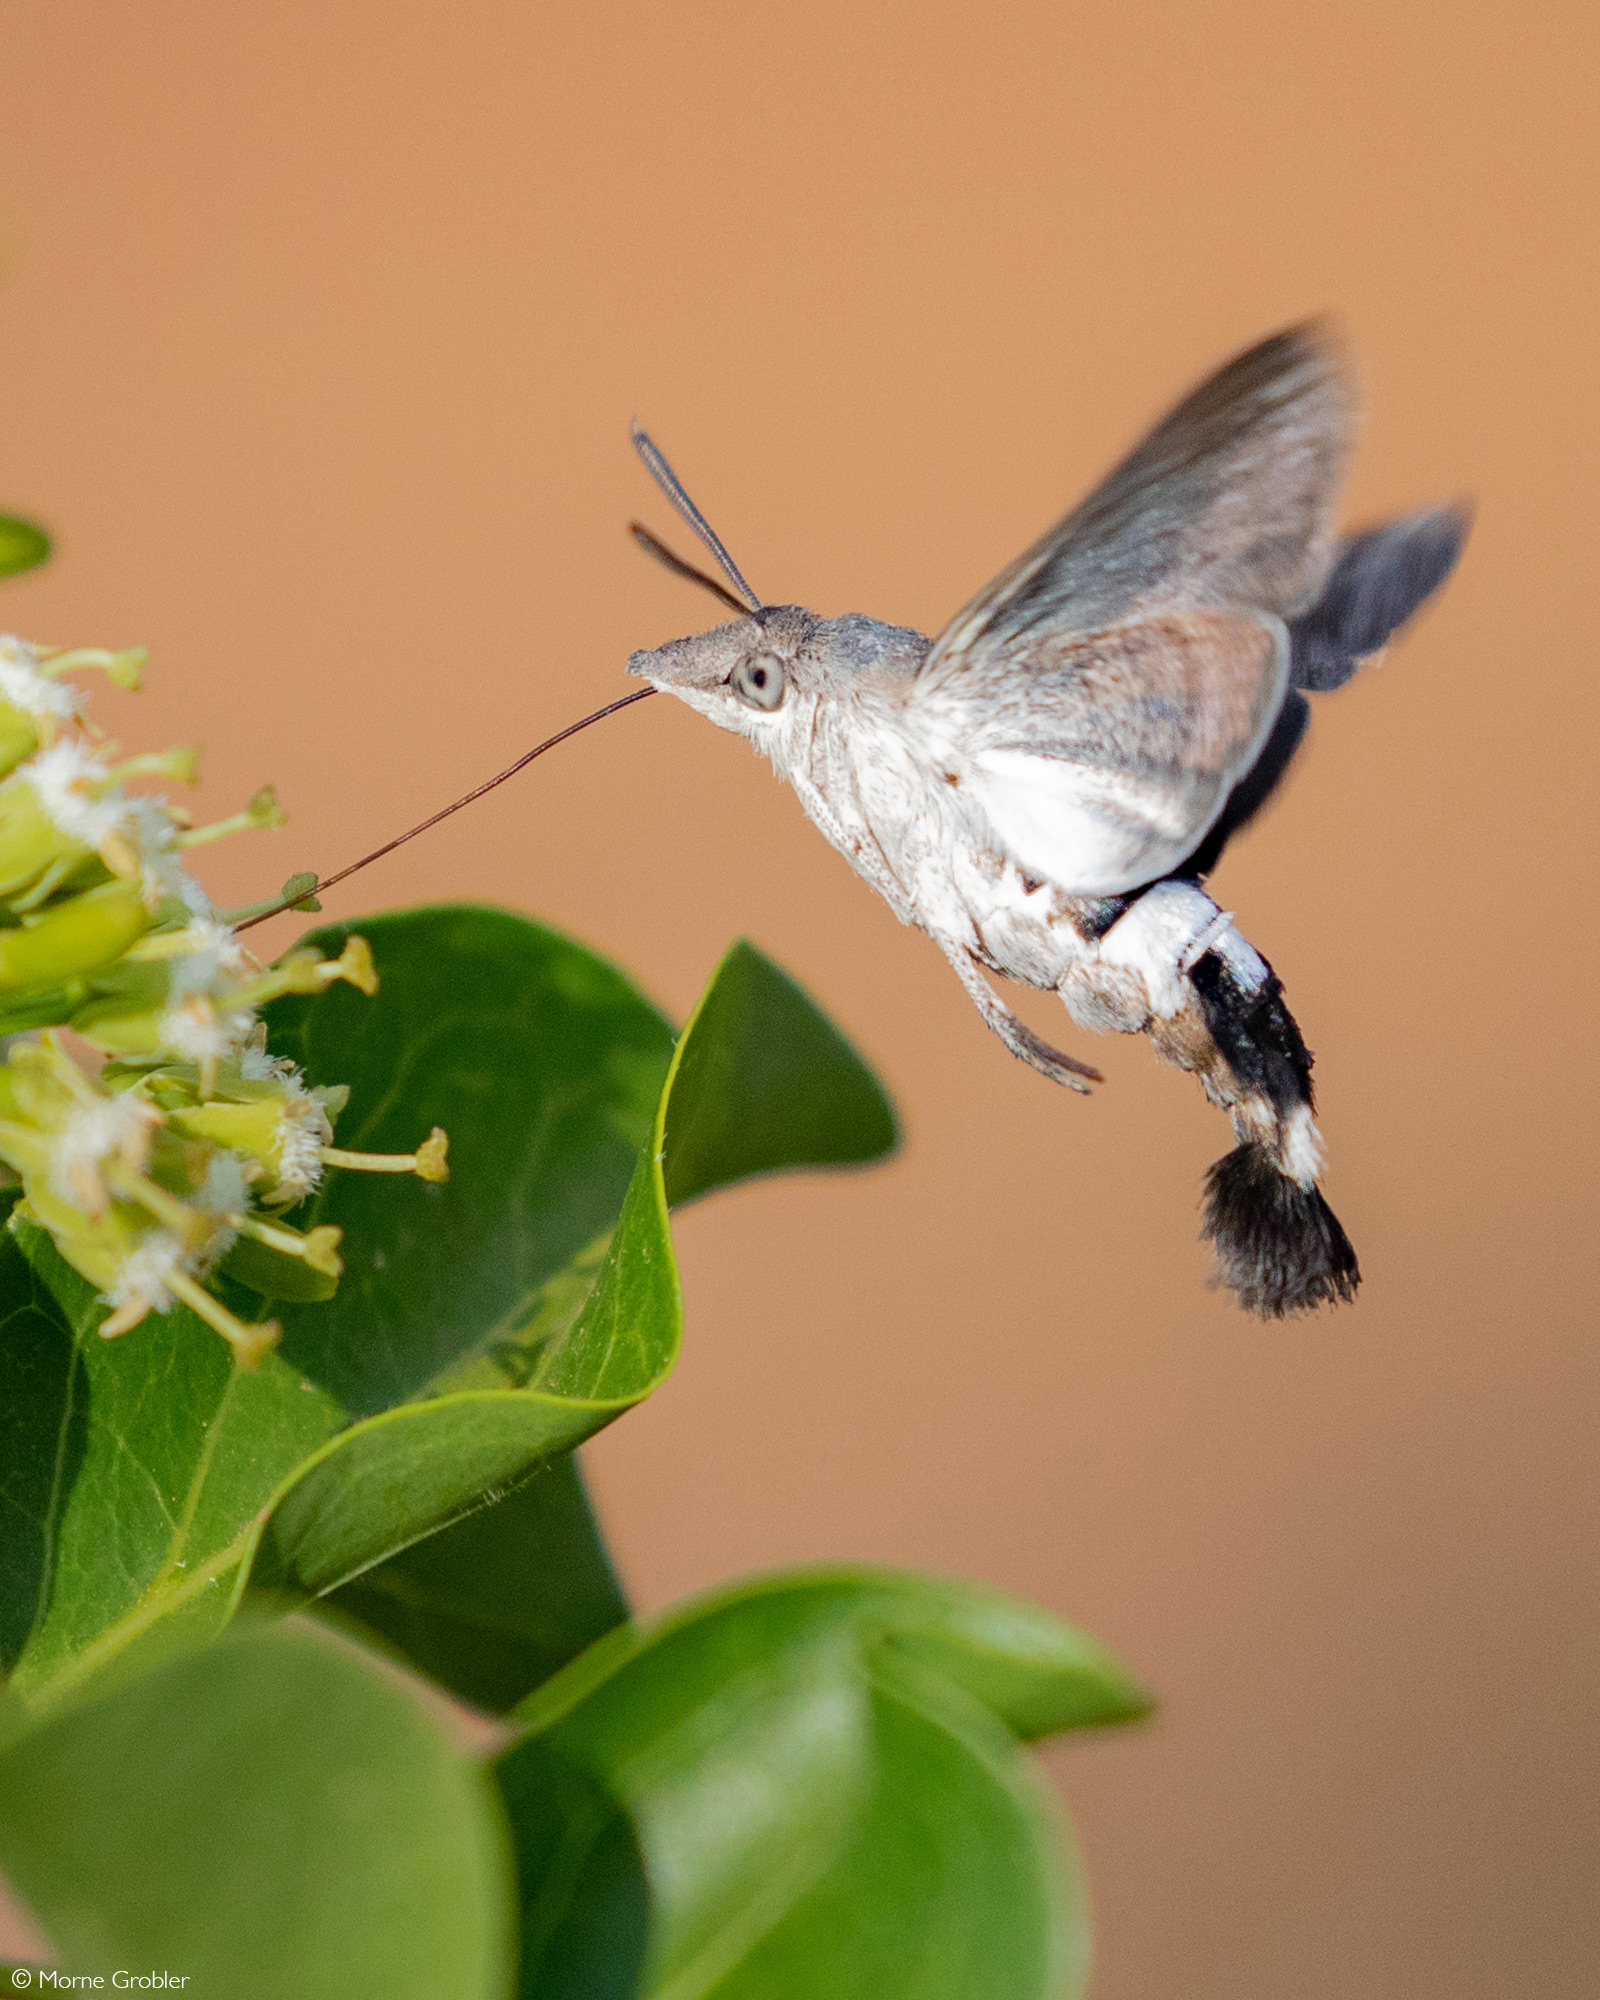 African hummingbird hawk-moth drinking nectar from a flower. Kruger National Park, South Africa © Morne Grobler